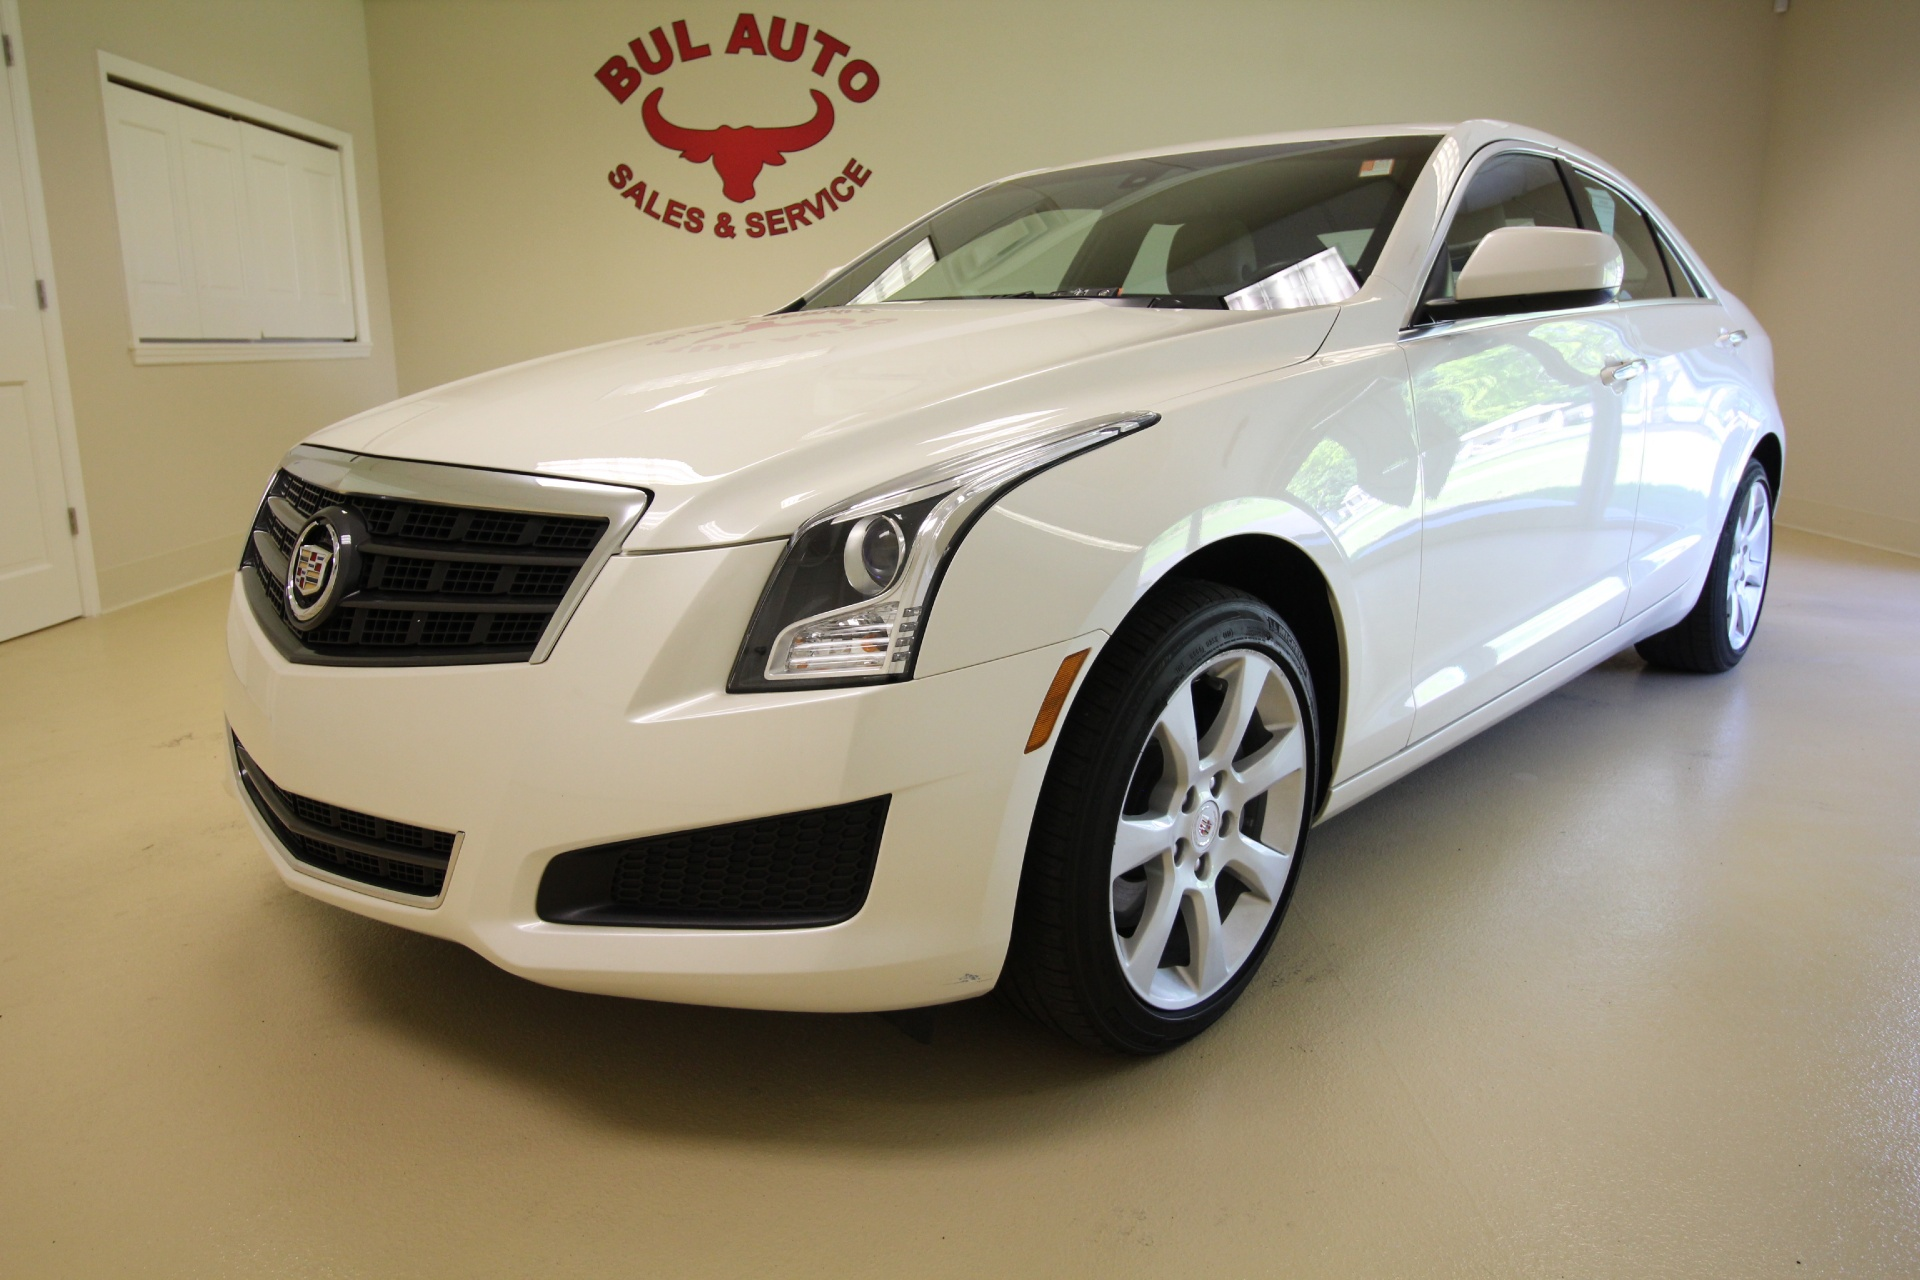 auto srx united used at collection luxury detail fwd cadillac